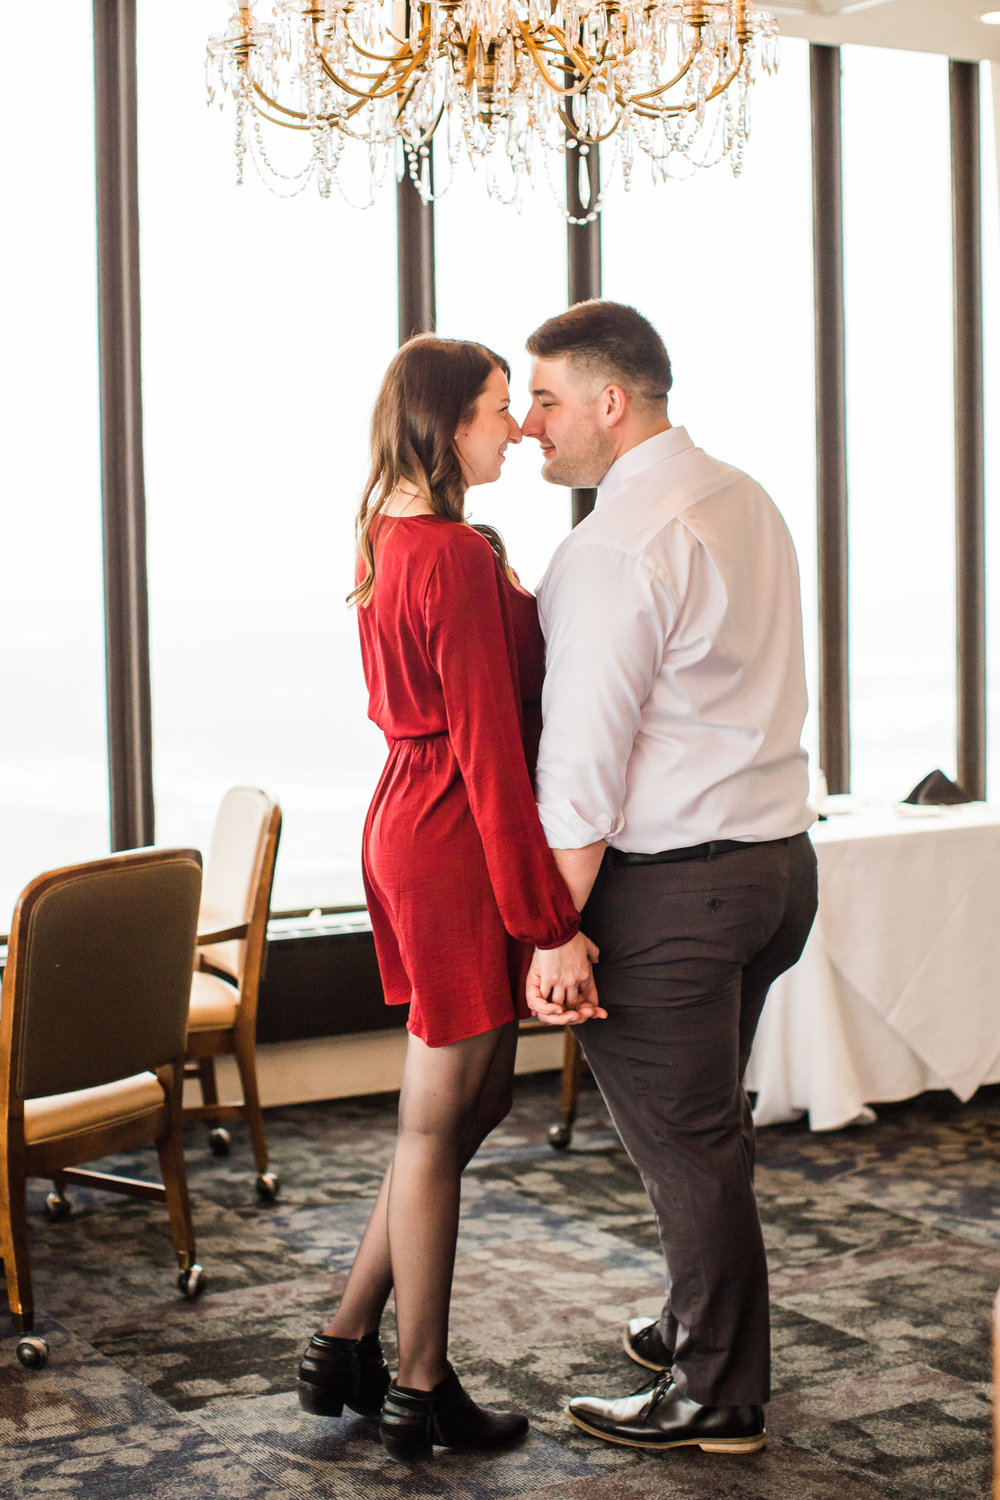 engagement wedding pictures at the embassy club des moines iowa